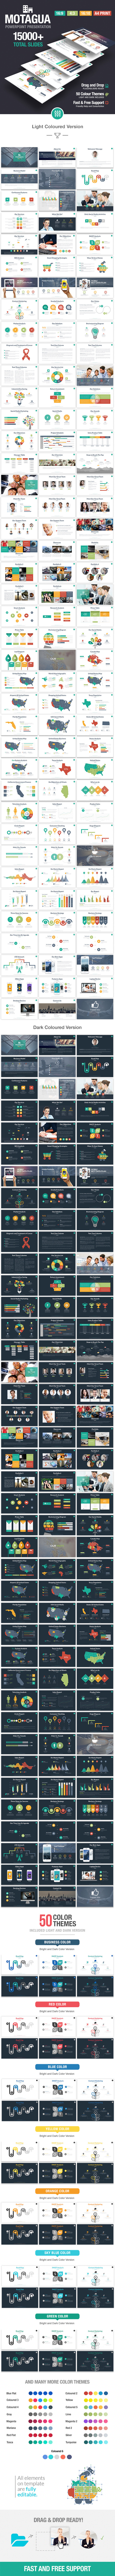 GraphicRiver Motagua Multipurpose PowerPoint Template 10348960